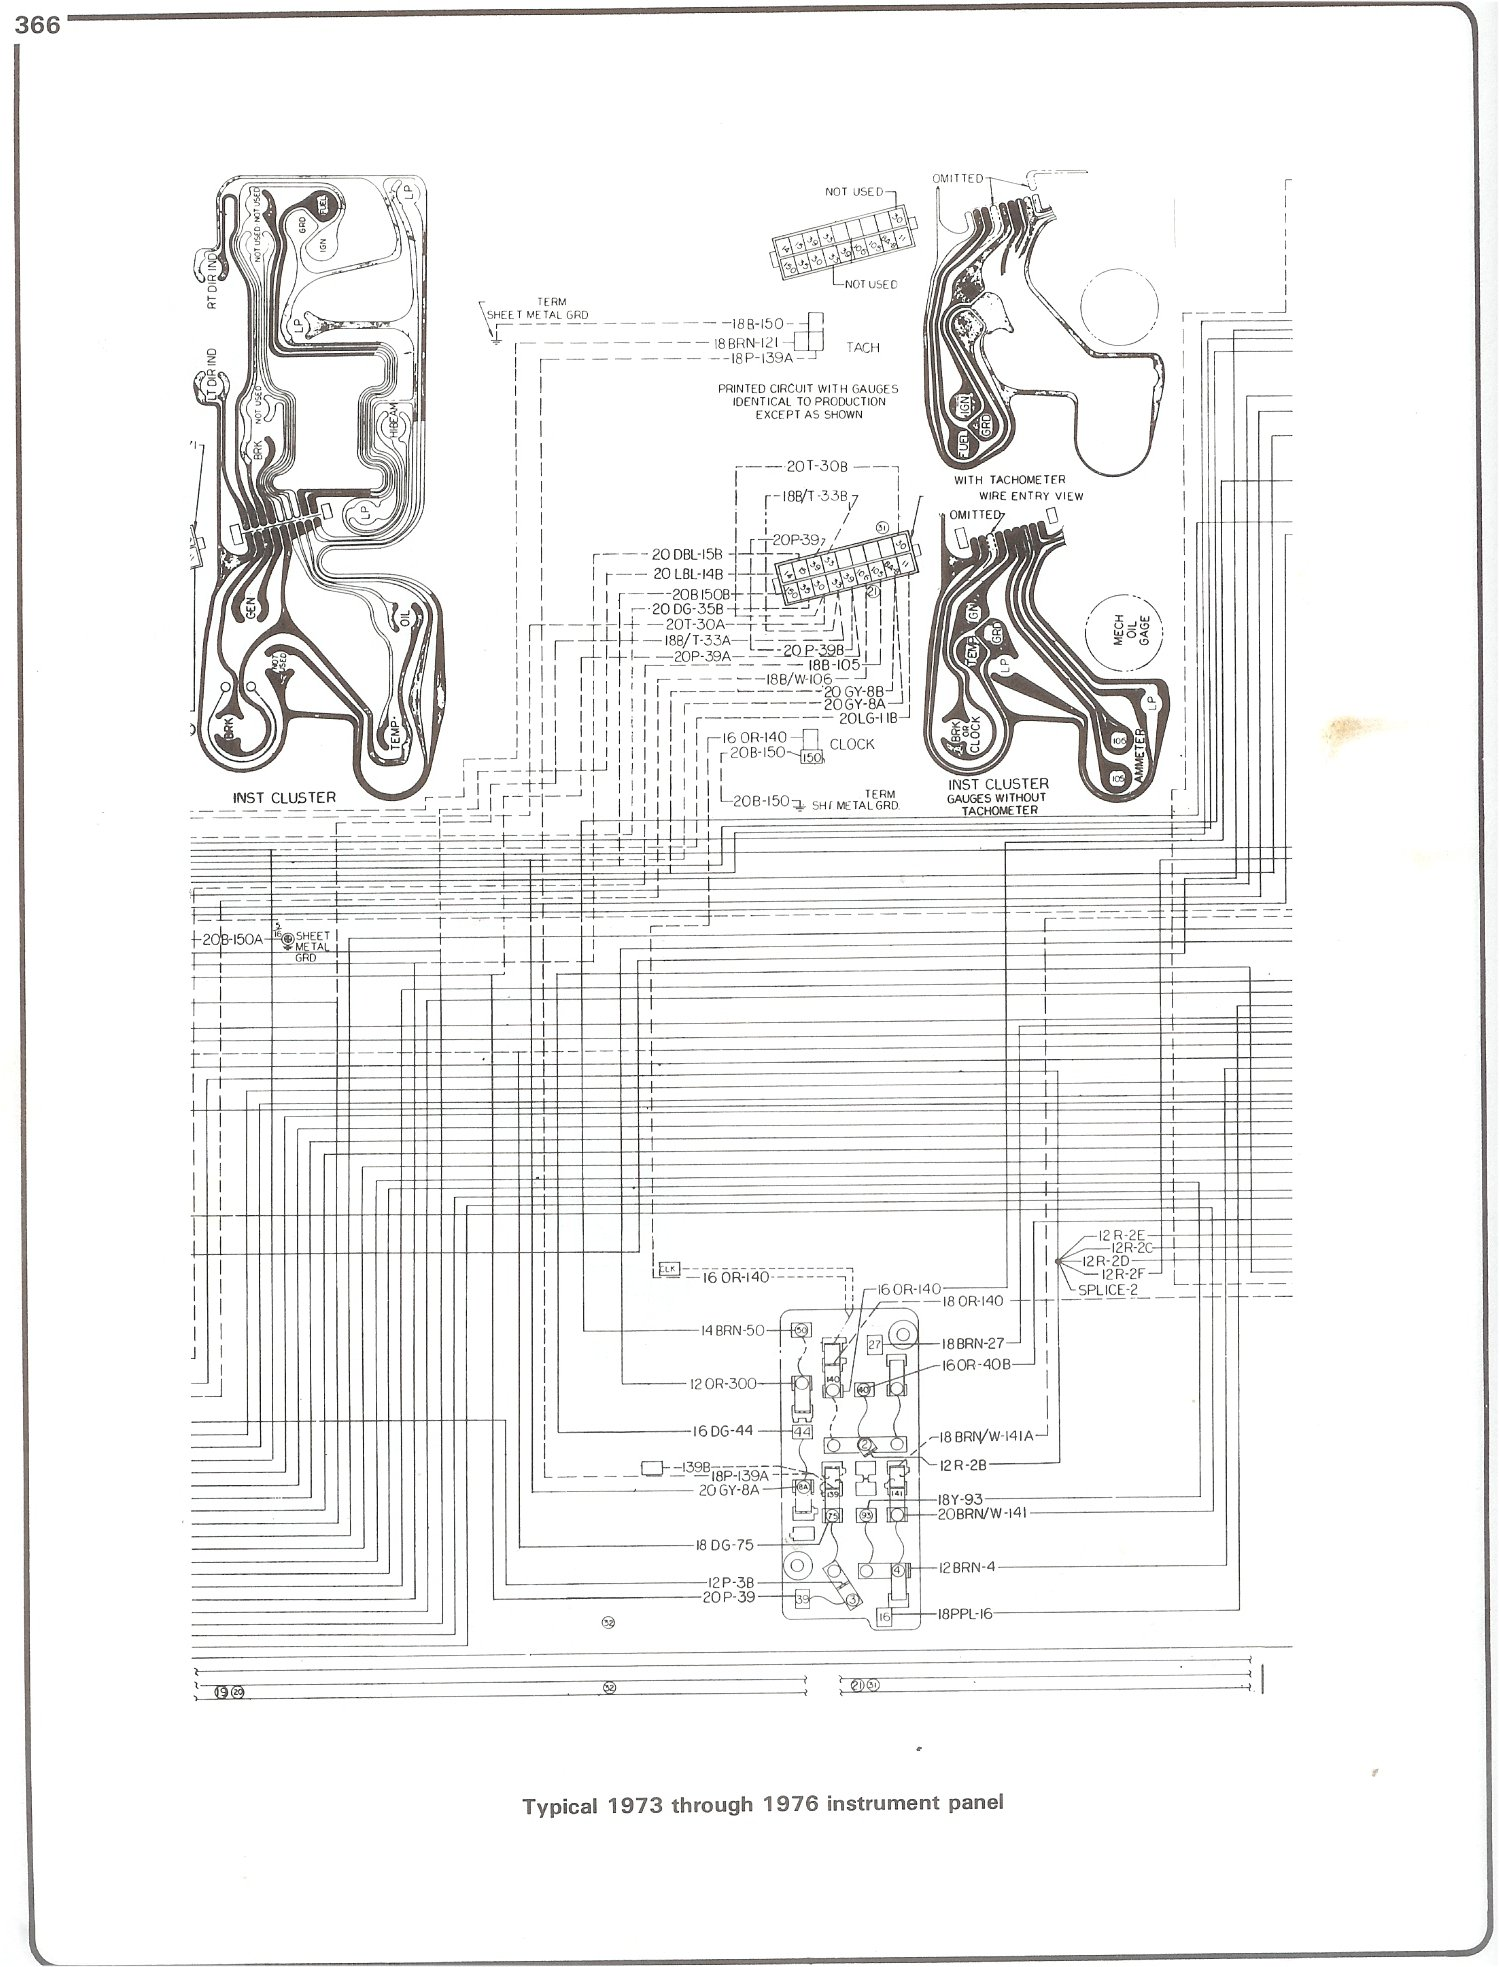 Chevy wiring schematics on complete 73 87 wiring diagrams Chevy 4L60E Transmission Wiring Schematic 1990 Chevy 3500 Wiring Diagram